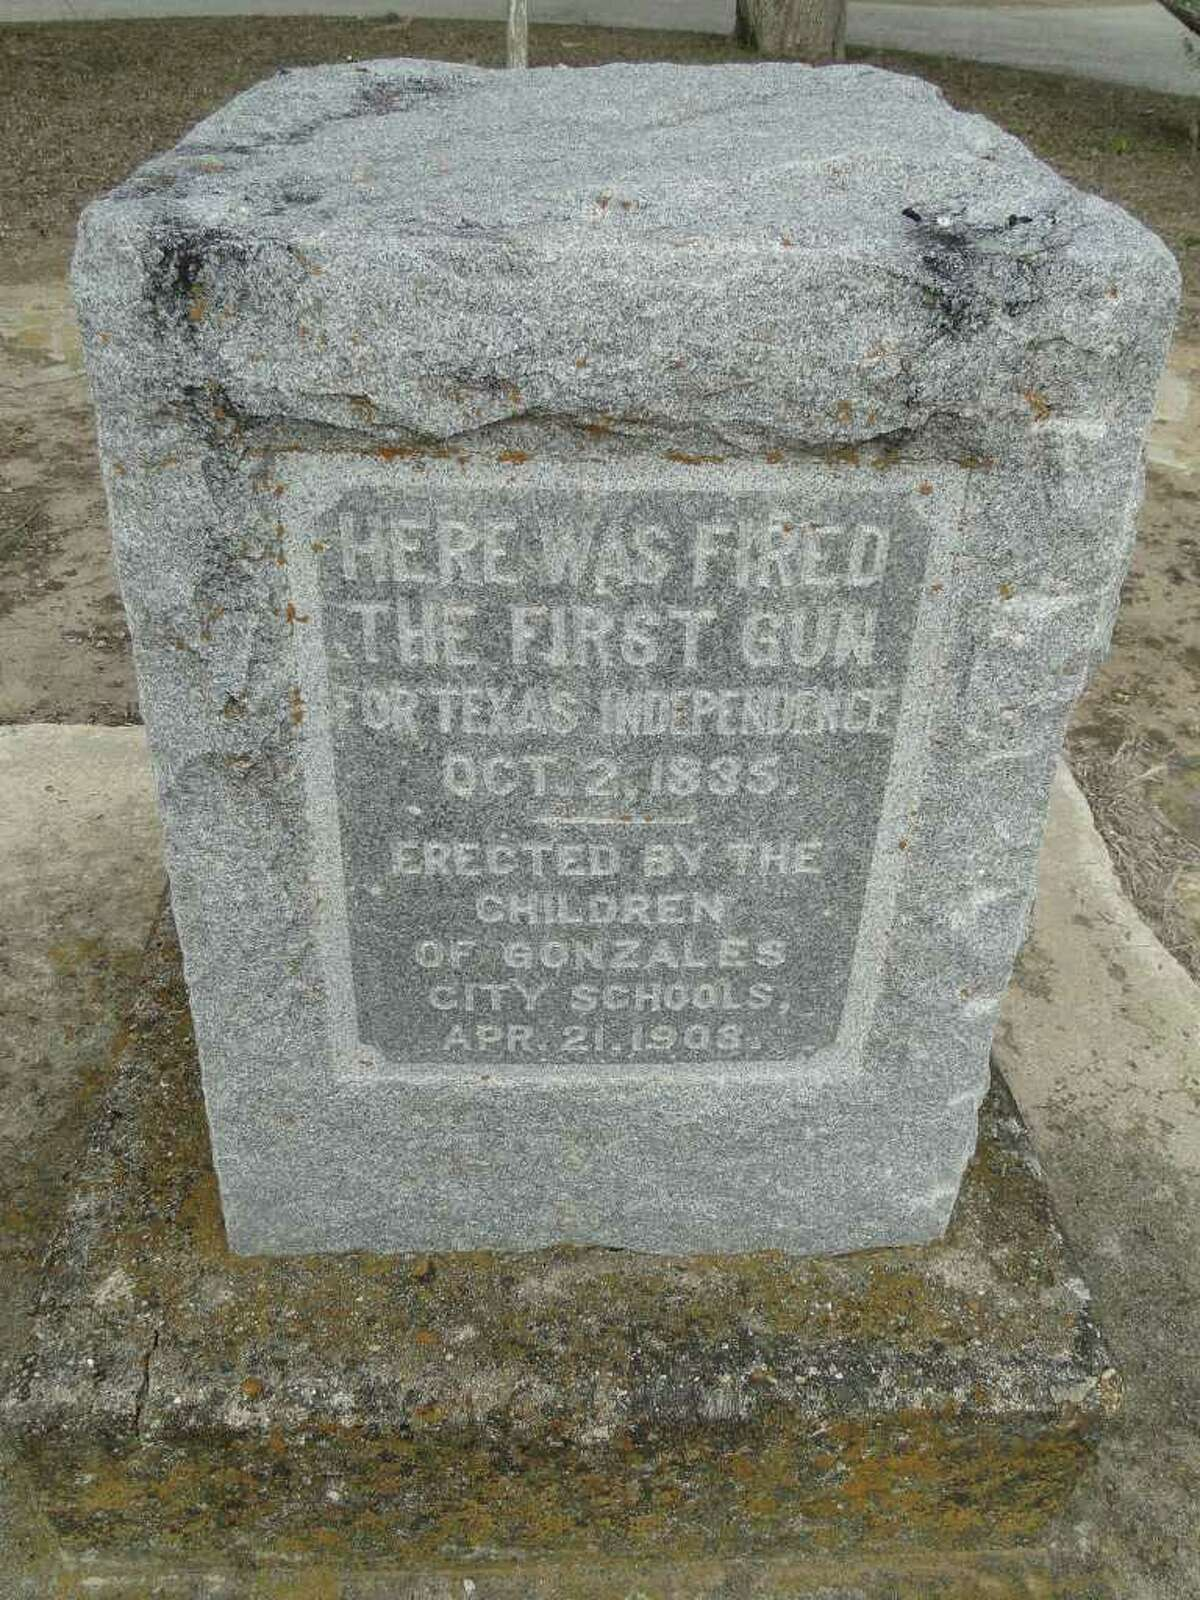 A granite marker stands at the sight on the Guadalupe River in Cost where Texian soldiers fired the Come and Take It cannon at Mexican soldiers on Oct. 2, 1835. It was the first shot in the Texas Revolution.